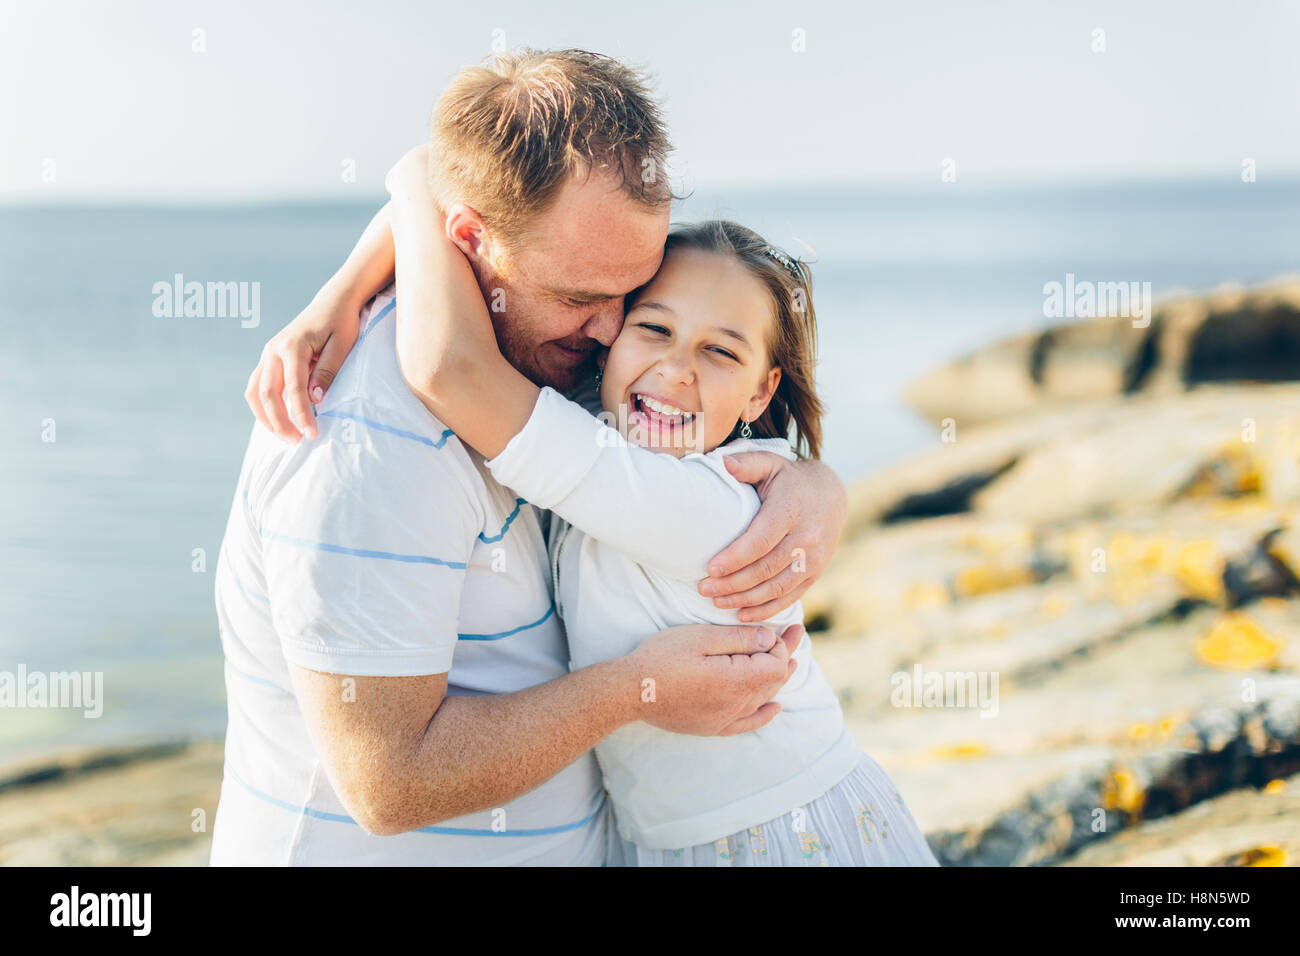 Man hugging girl (10-11) - Stock Image